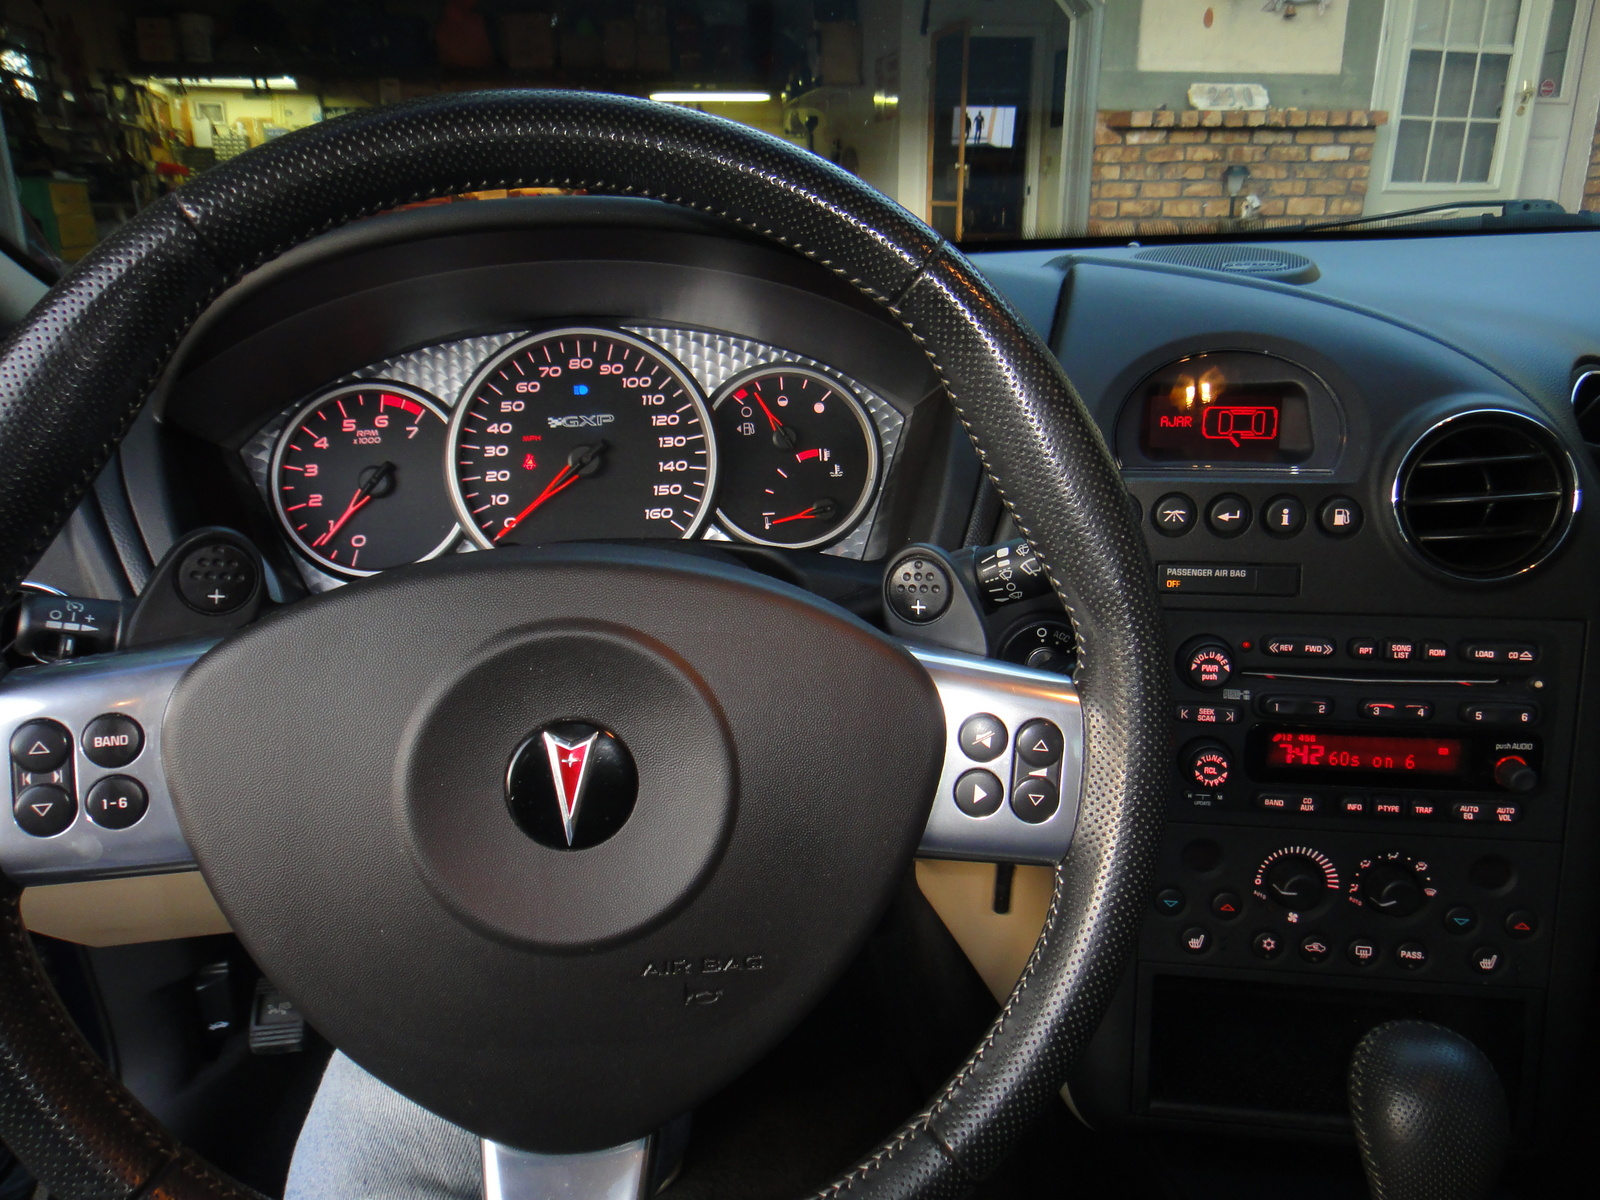 2006 Pontiac Grand Prix Interior Pictures Cargurus